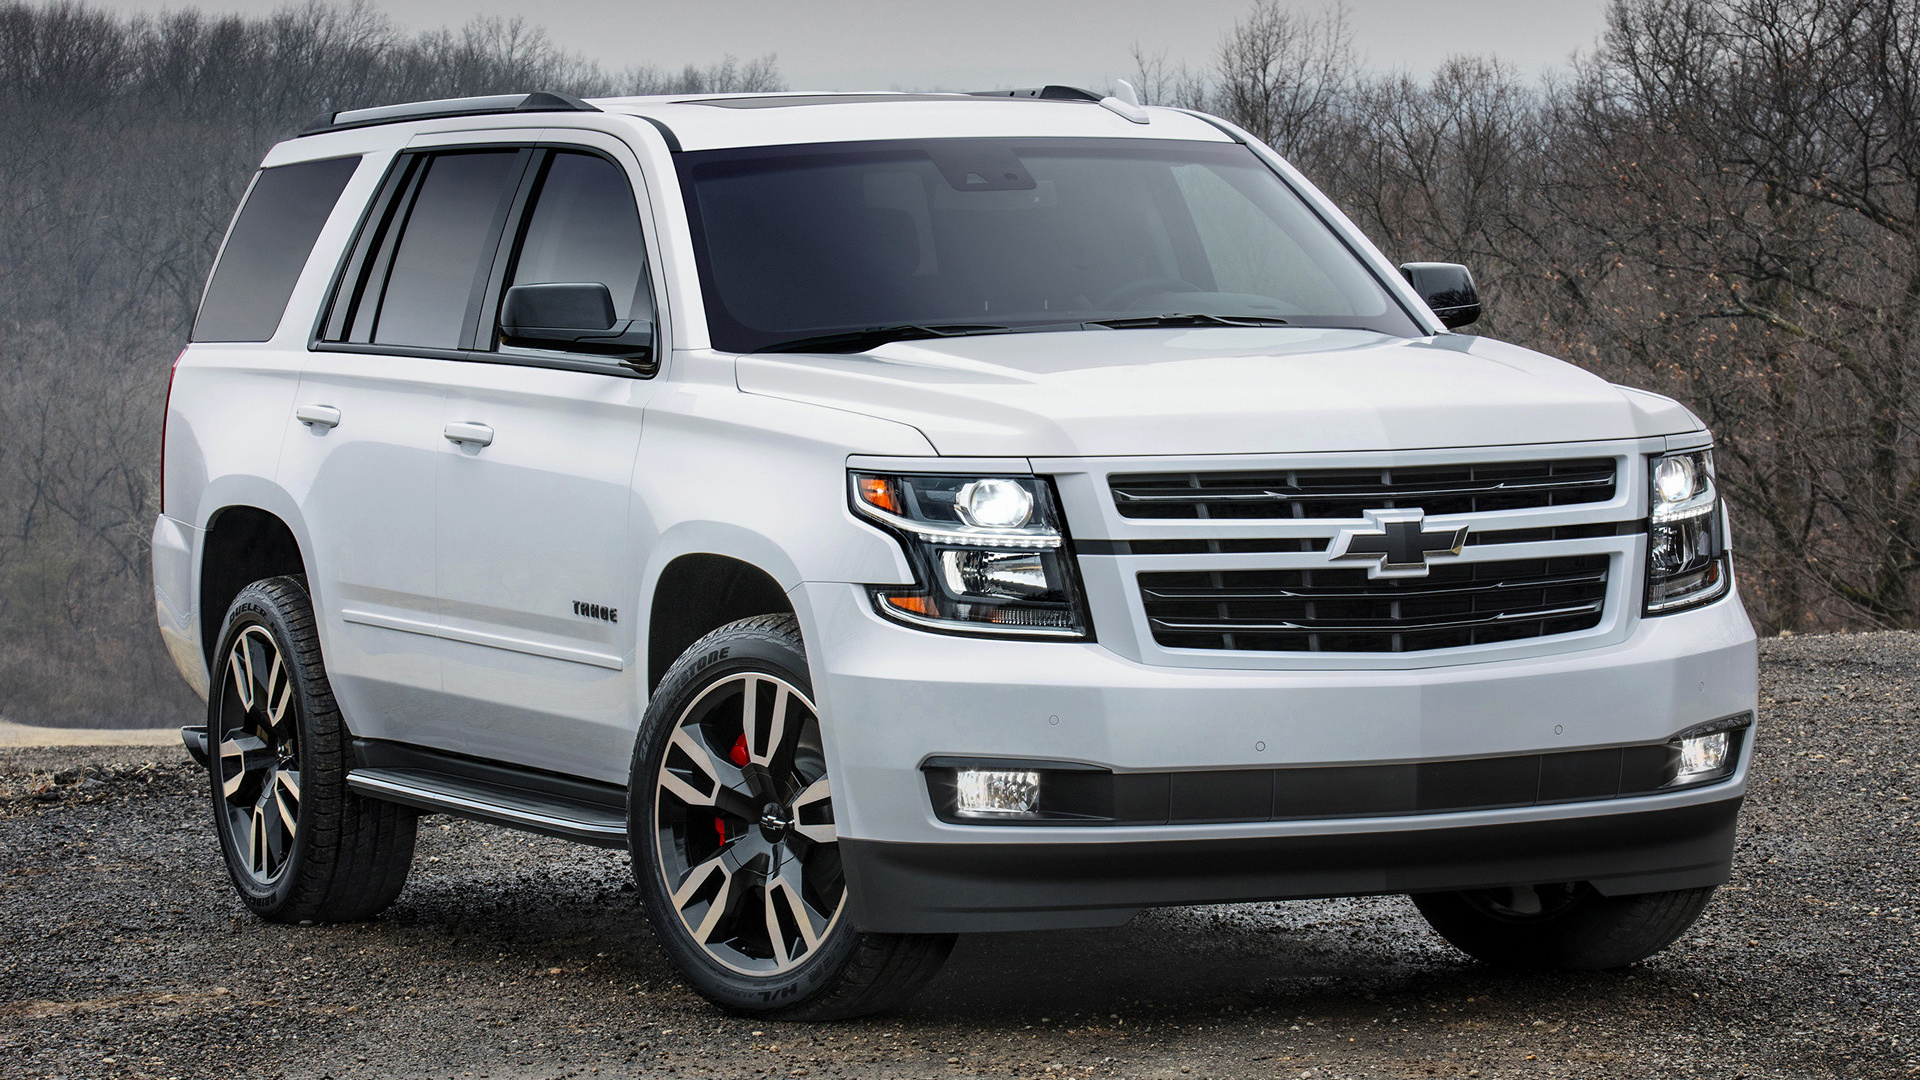 Chevrolet Tahoe RST Premier (2018) Wallpapers and HD Images - Car Pixel